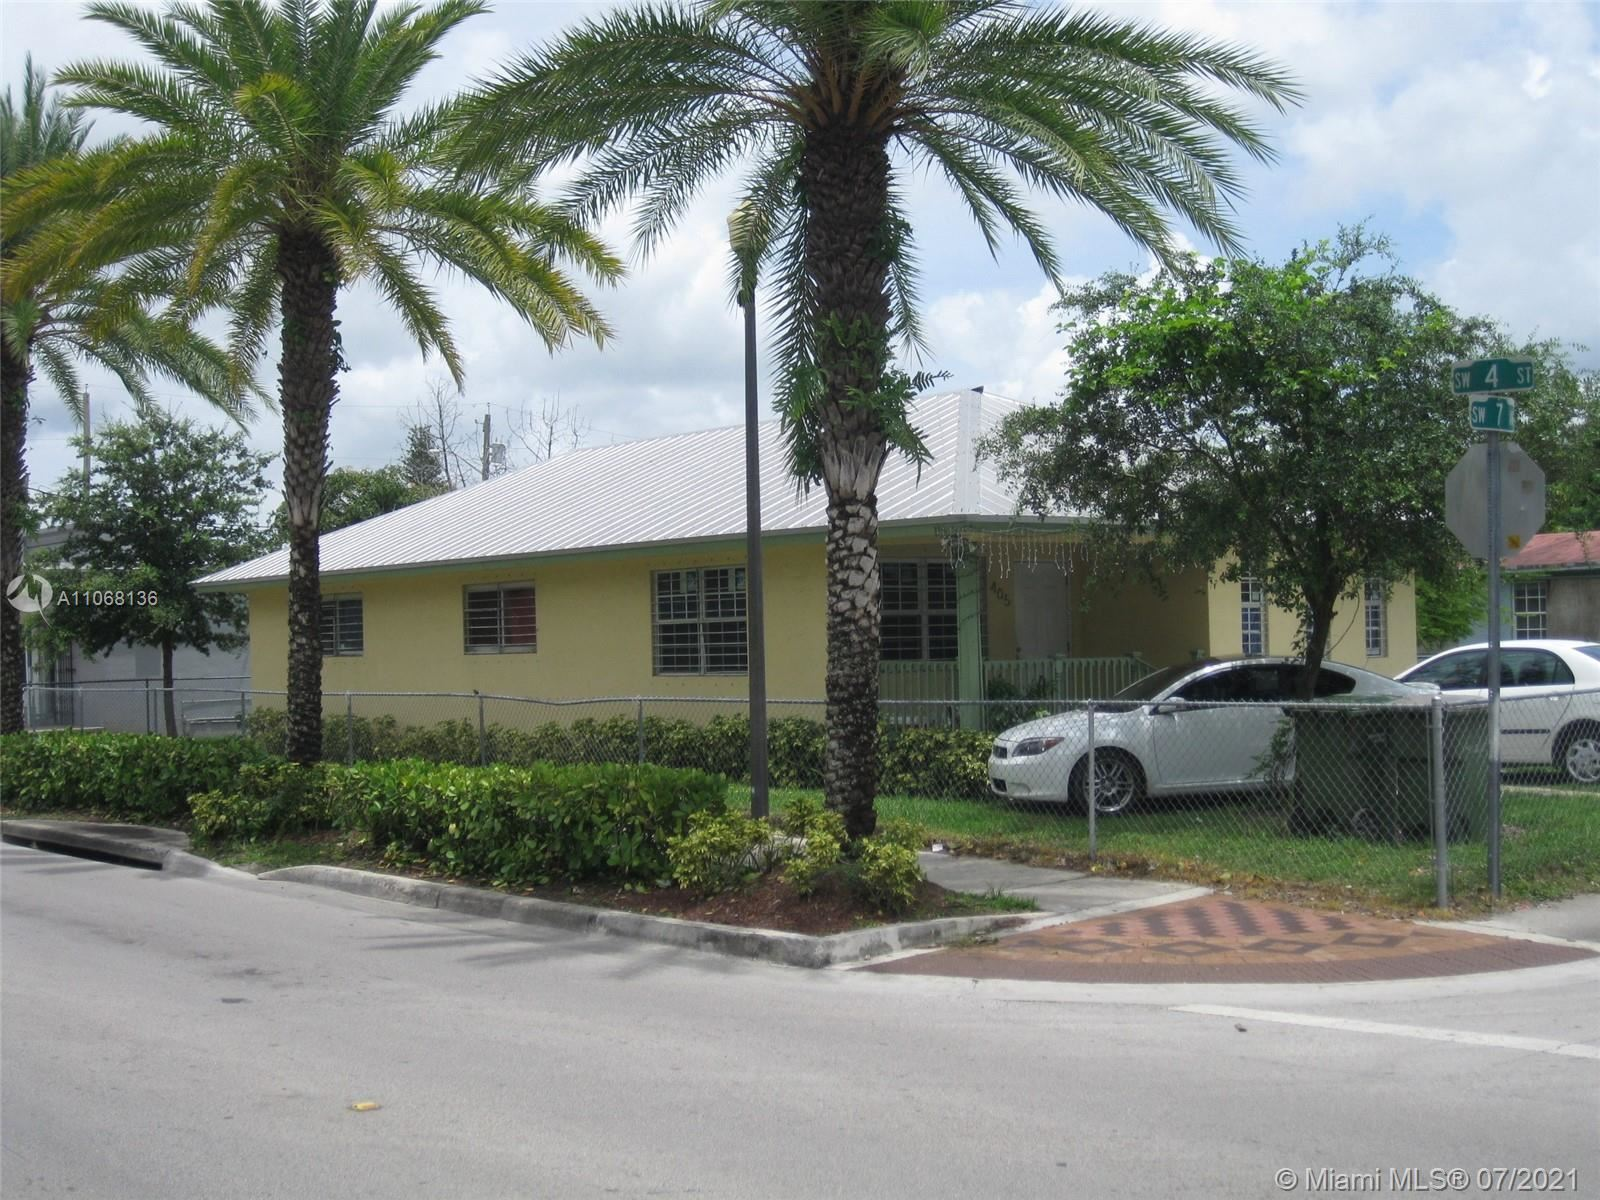 405 SW 7th Ave, Homestead, FL 33034 - #: A11068136